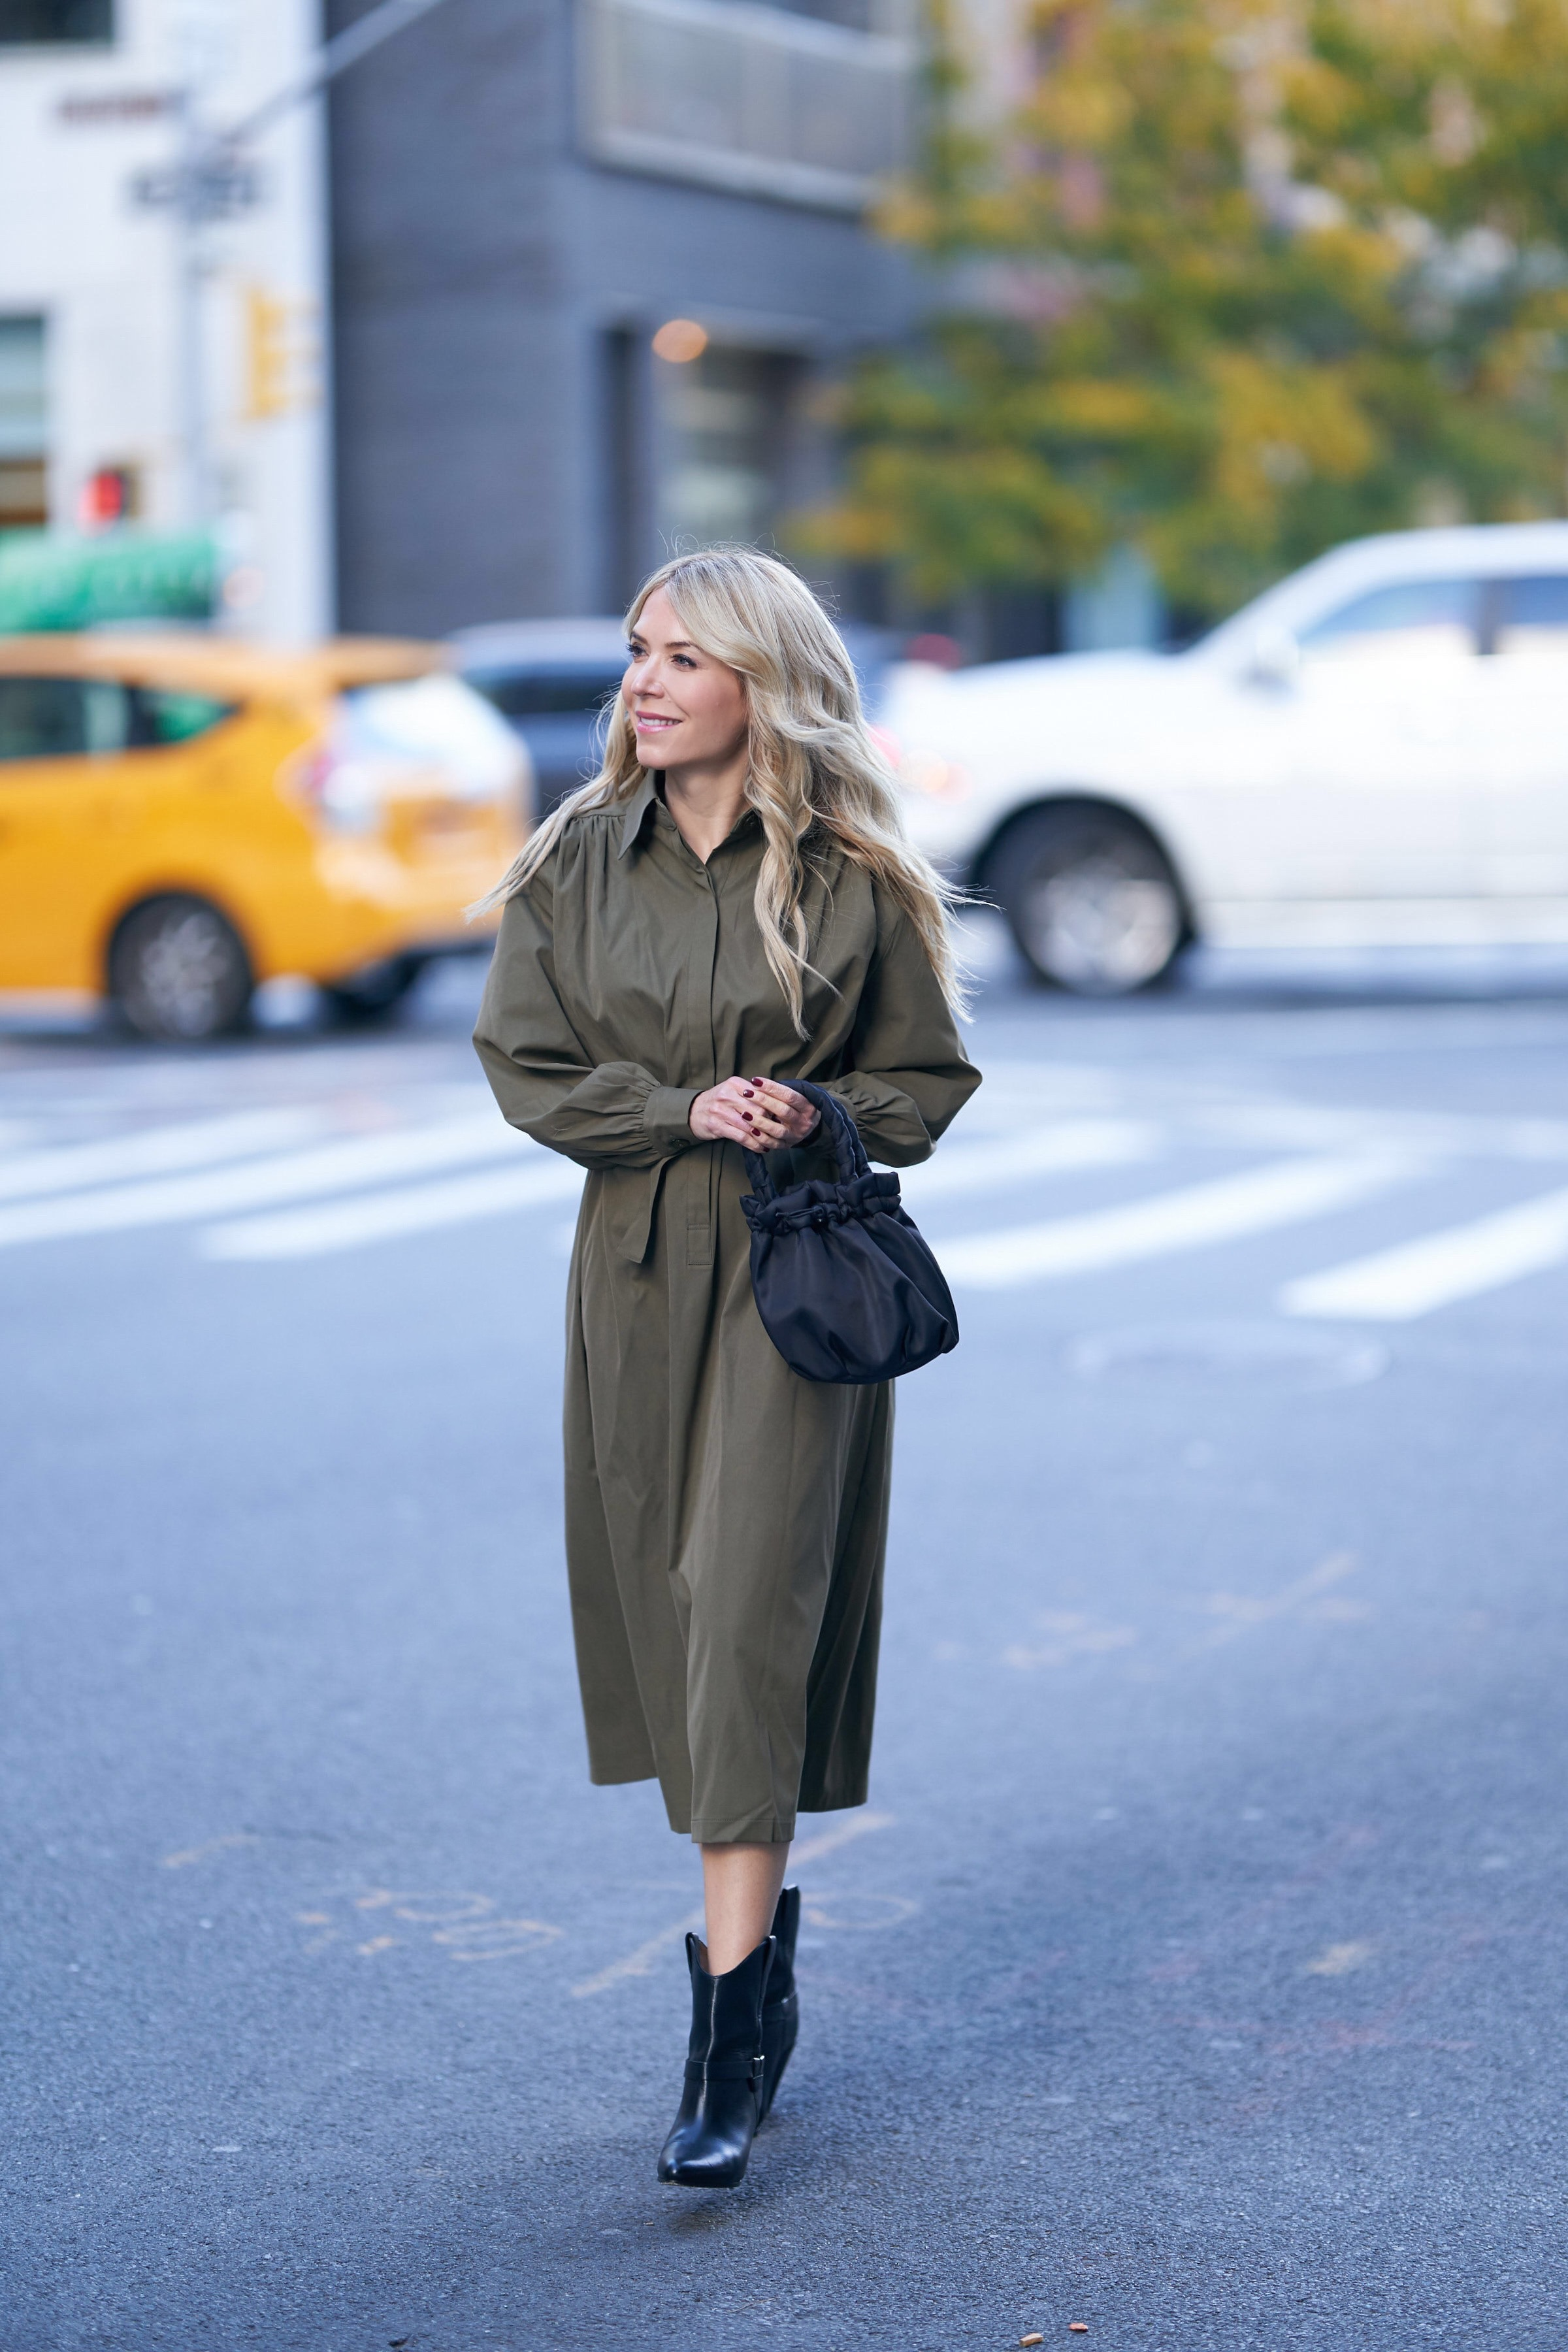 The Frankie Shop, Isabel Marant boots, Fall fashion, www.abouttheoutfits.com, About the Outfits, Laura Bonner, Staud bag, NYC Fashion Influencer